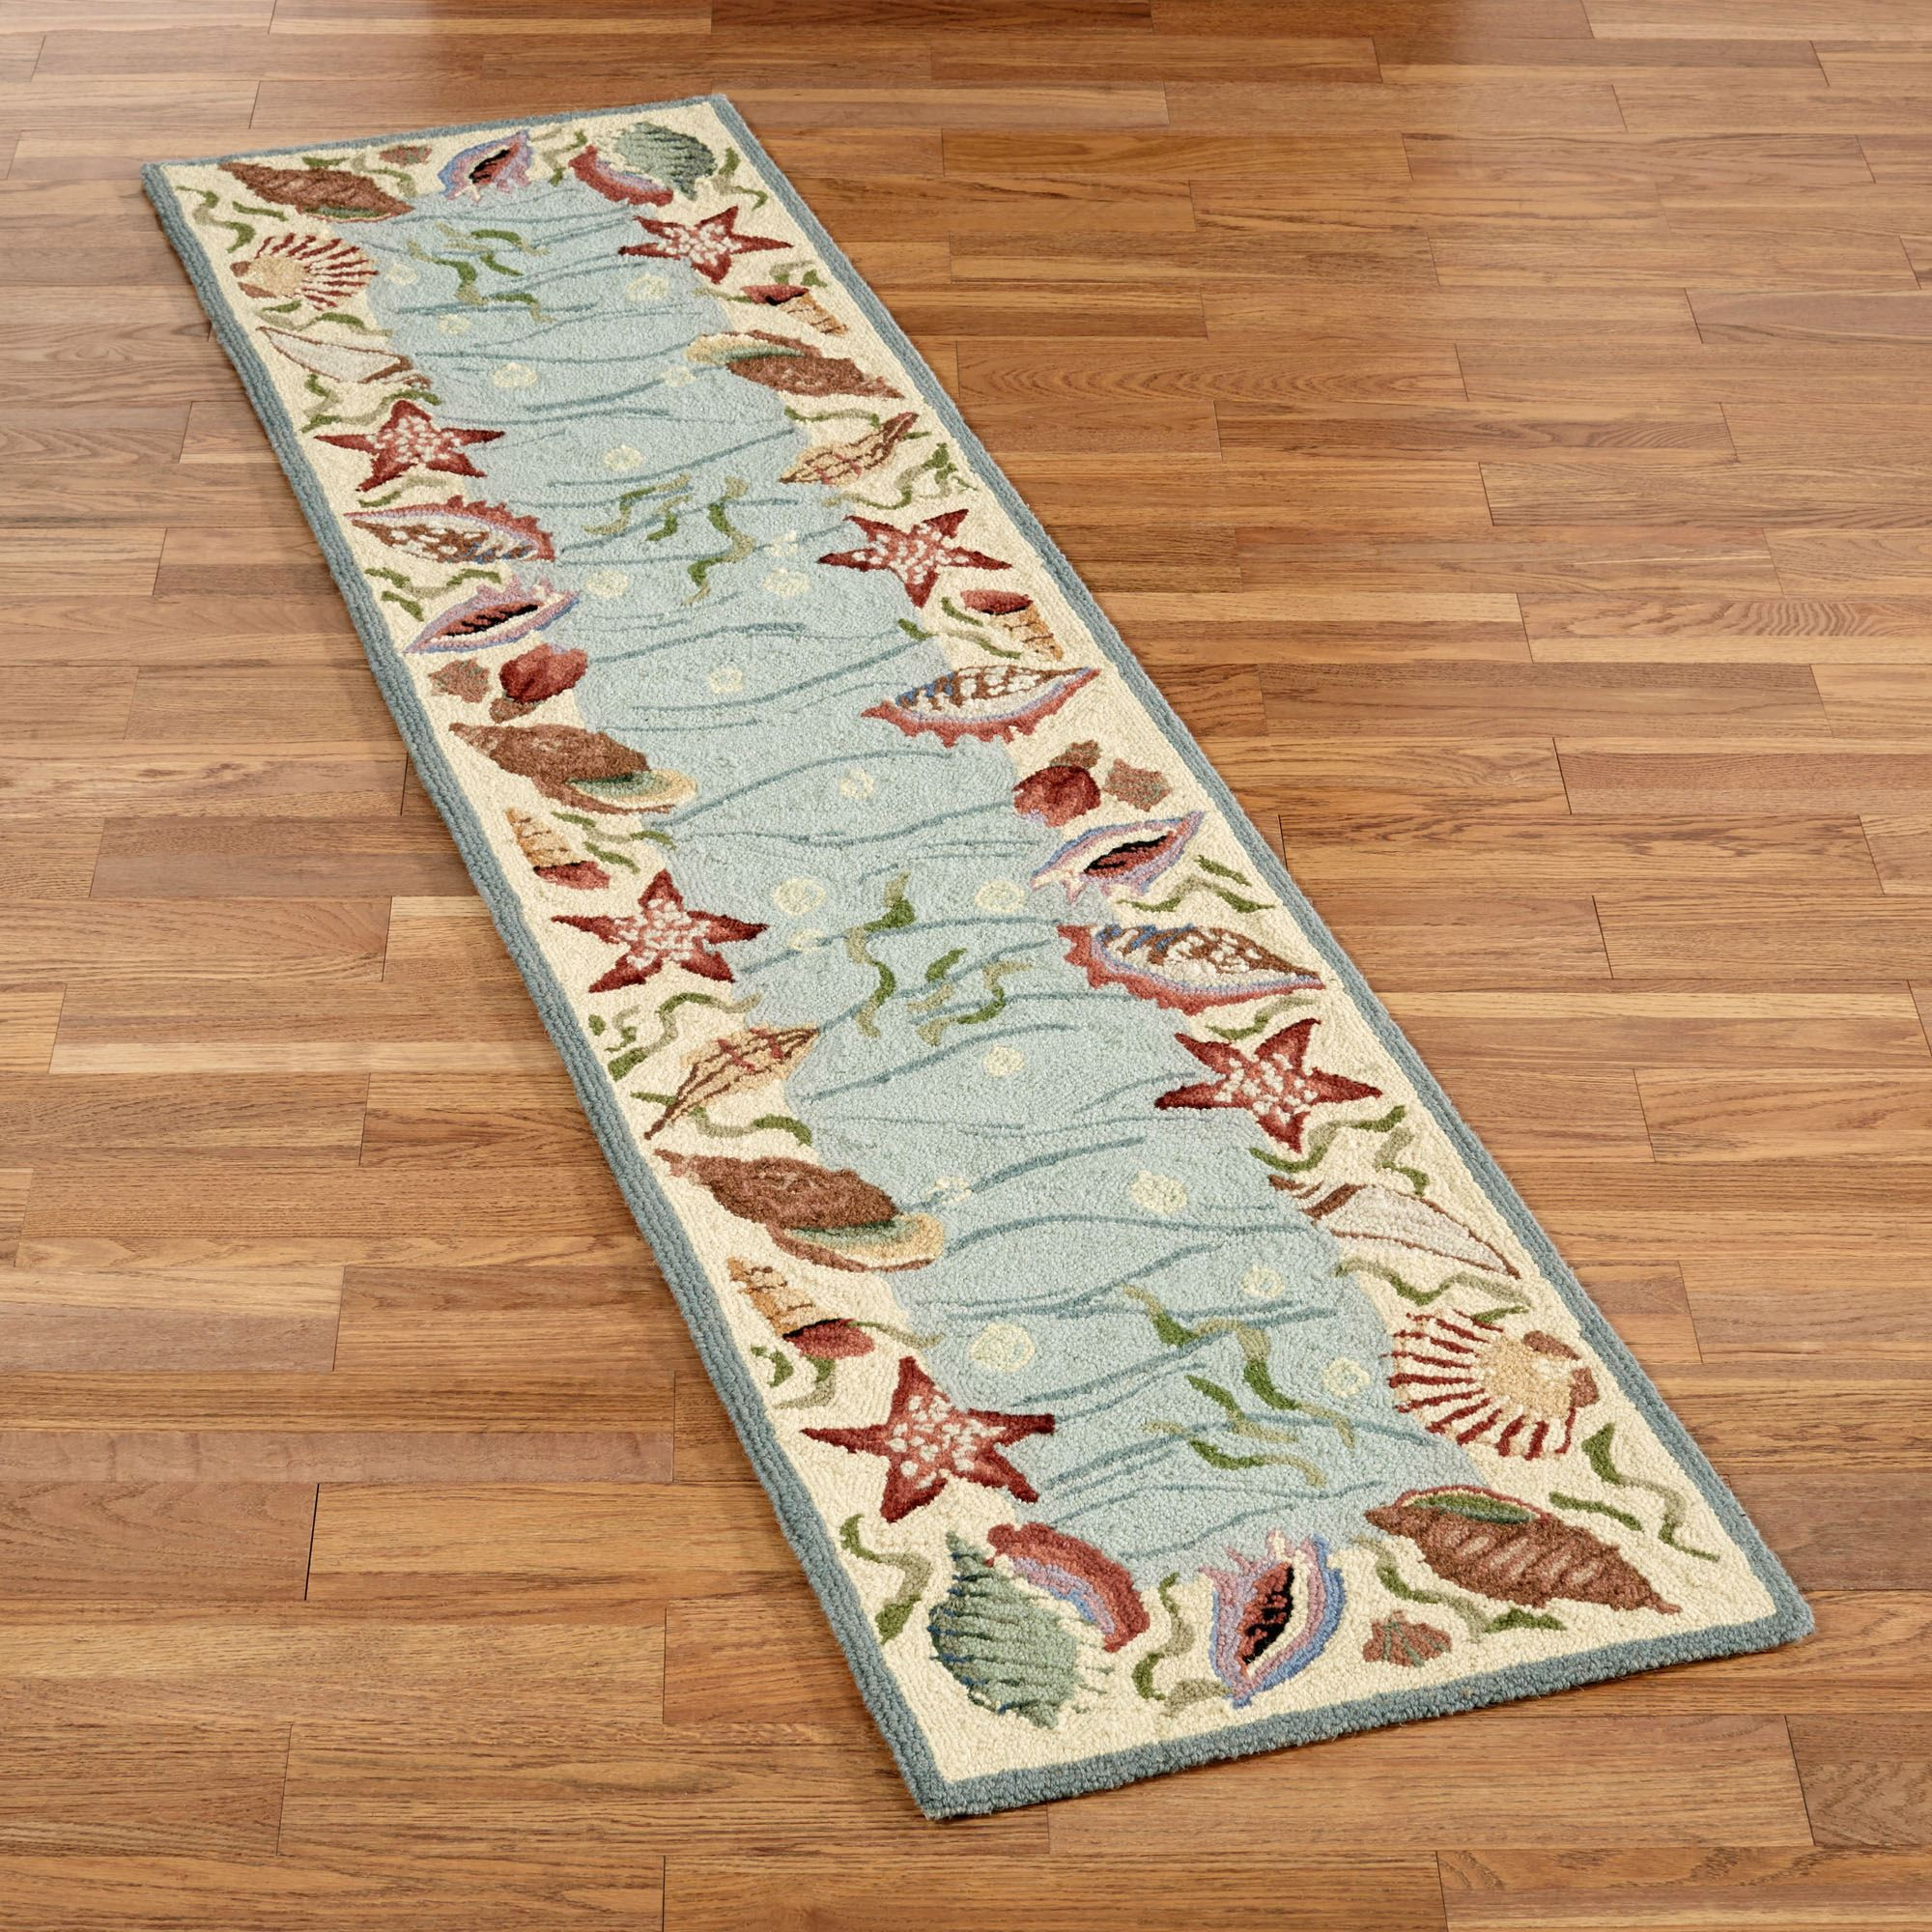 2x8 runner rug. Ocean Surprise Coastal Seas Rug Runner 2x8 K